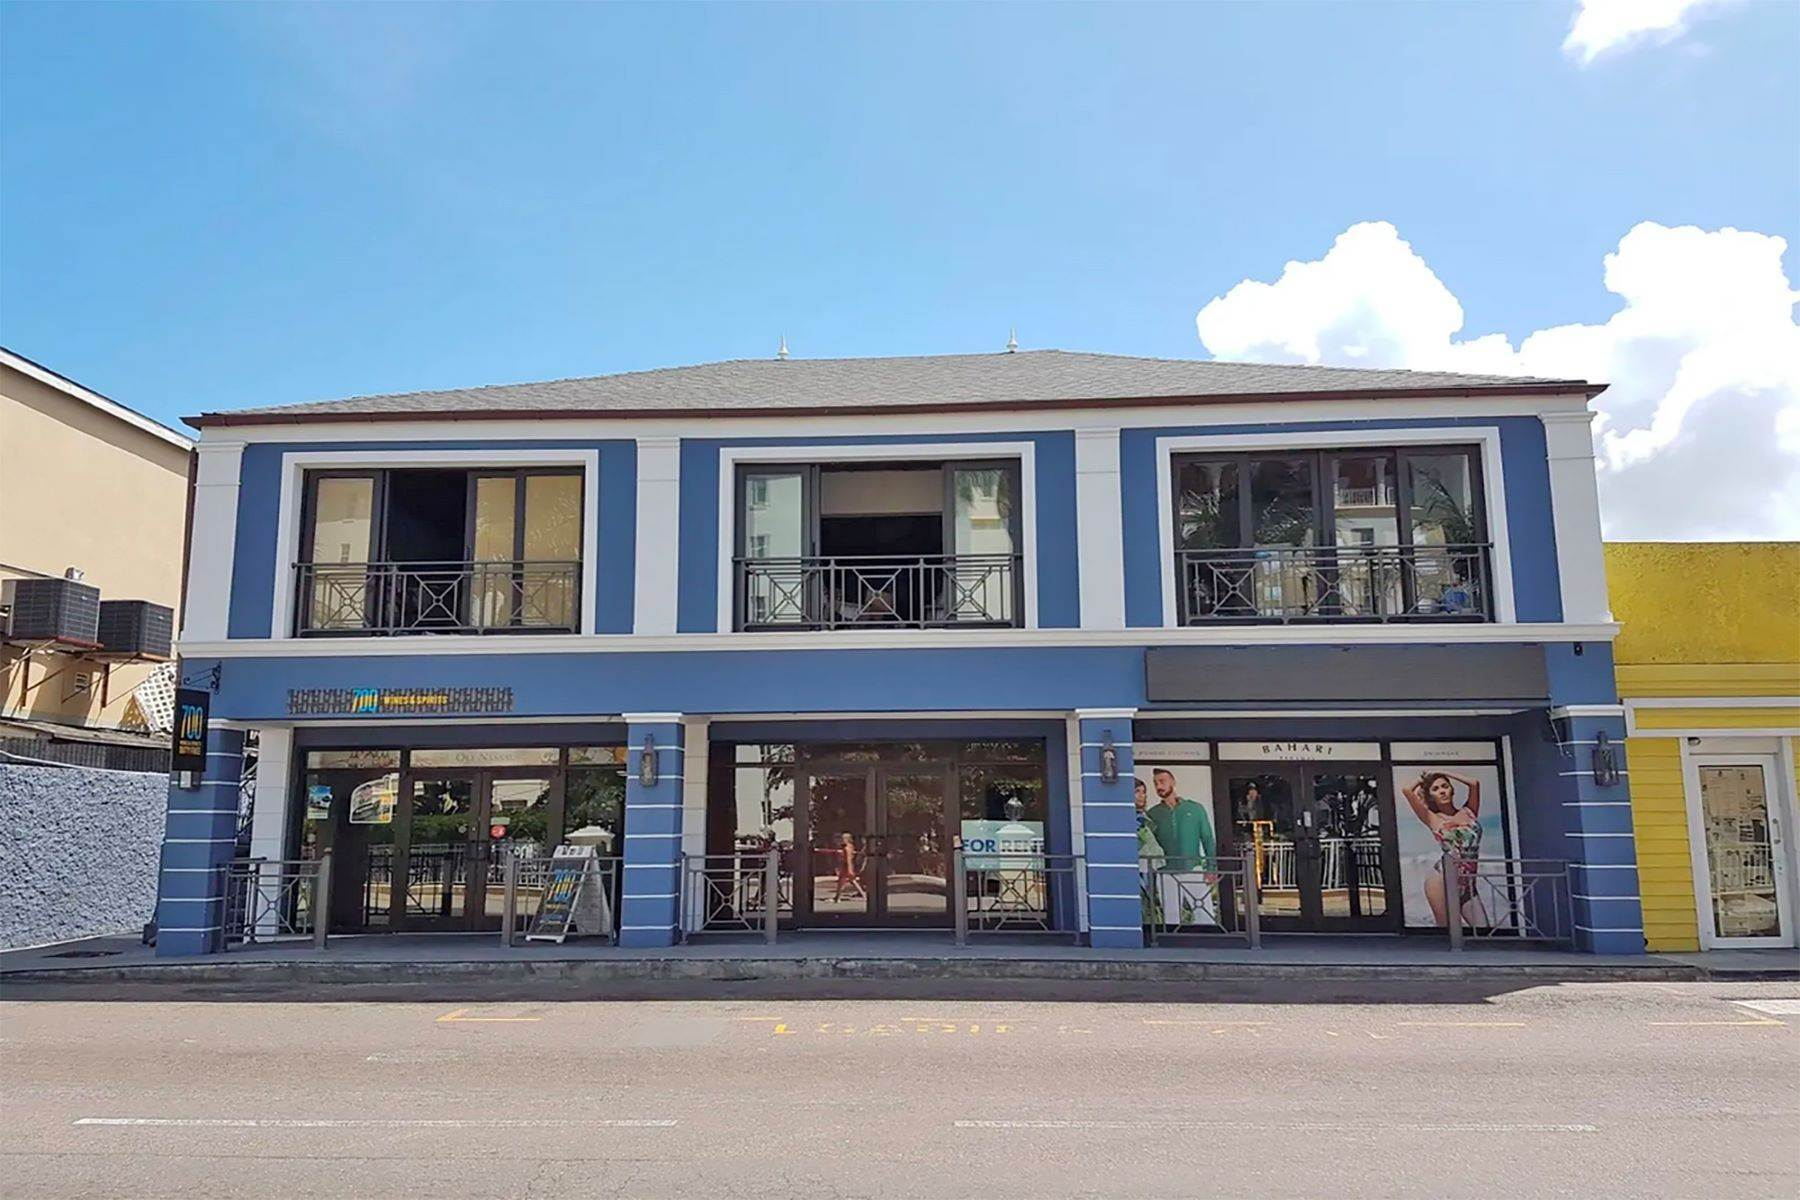 Commercial for Sale at Downtown Commercial Building off Marlborough Street Downtown, Nassau And Paradise Island Bahamas